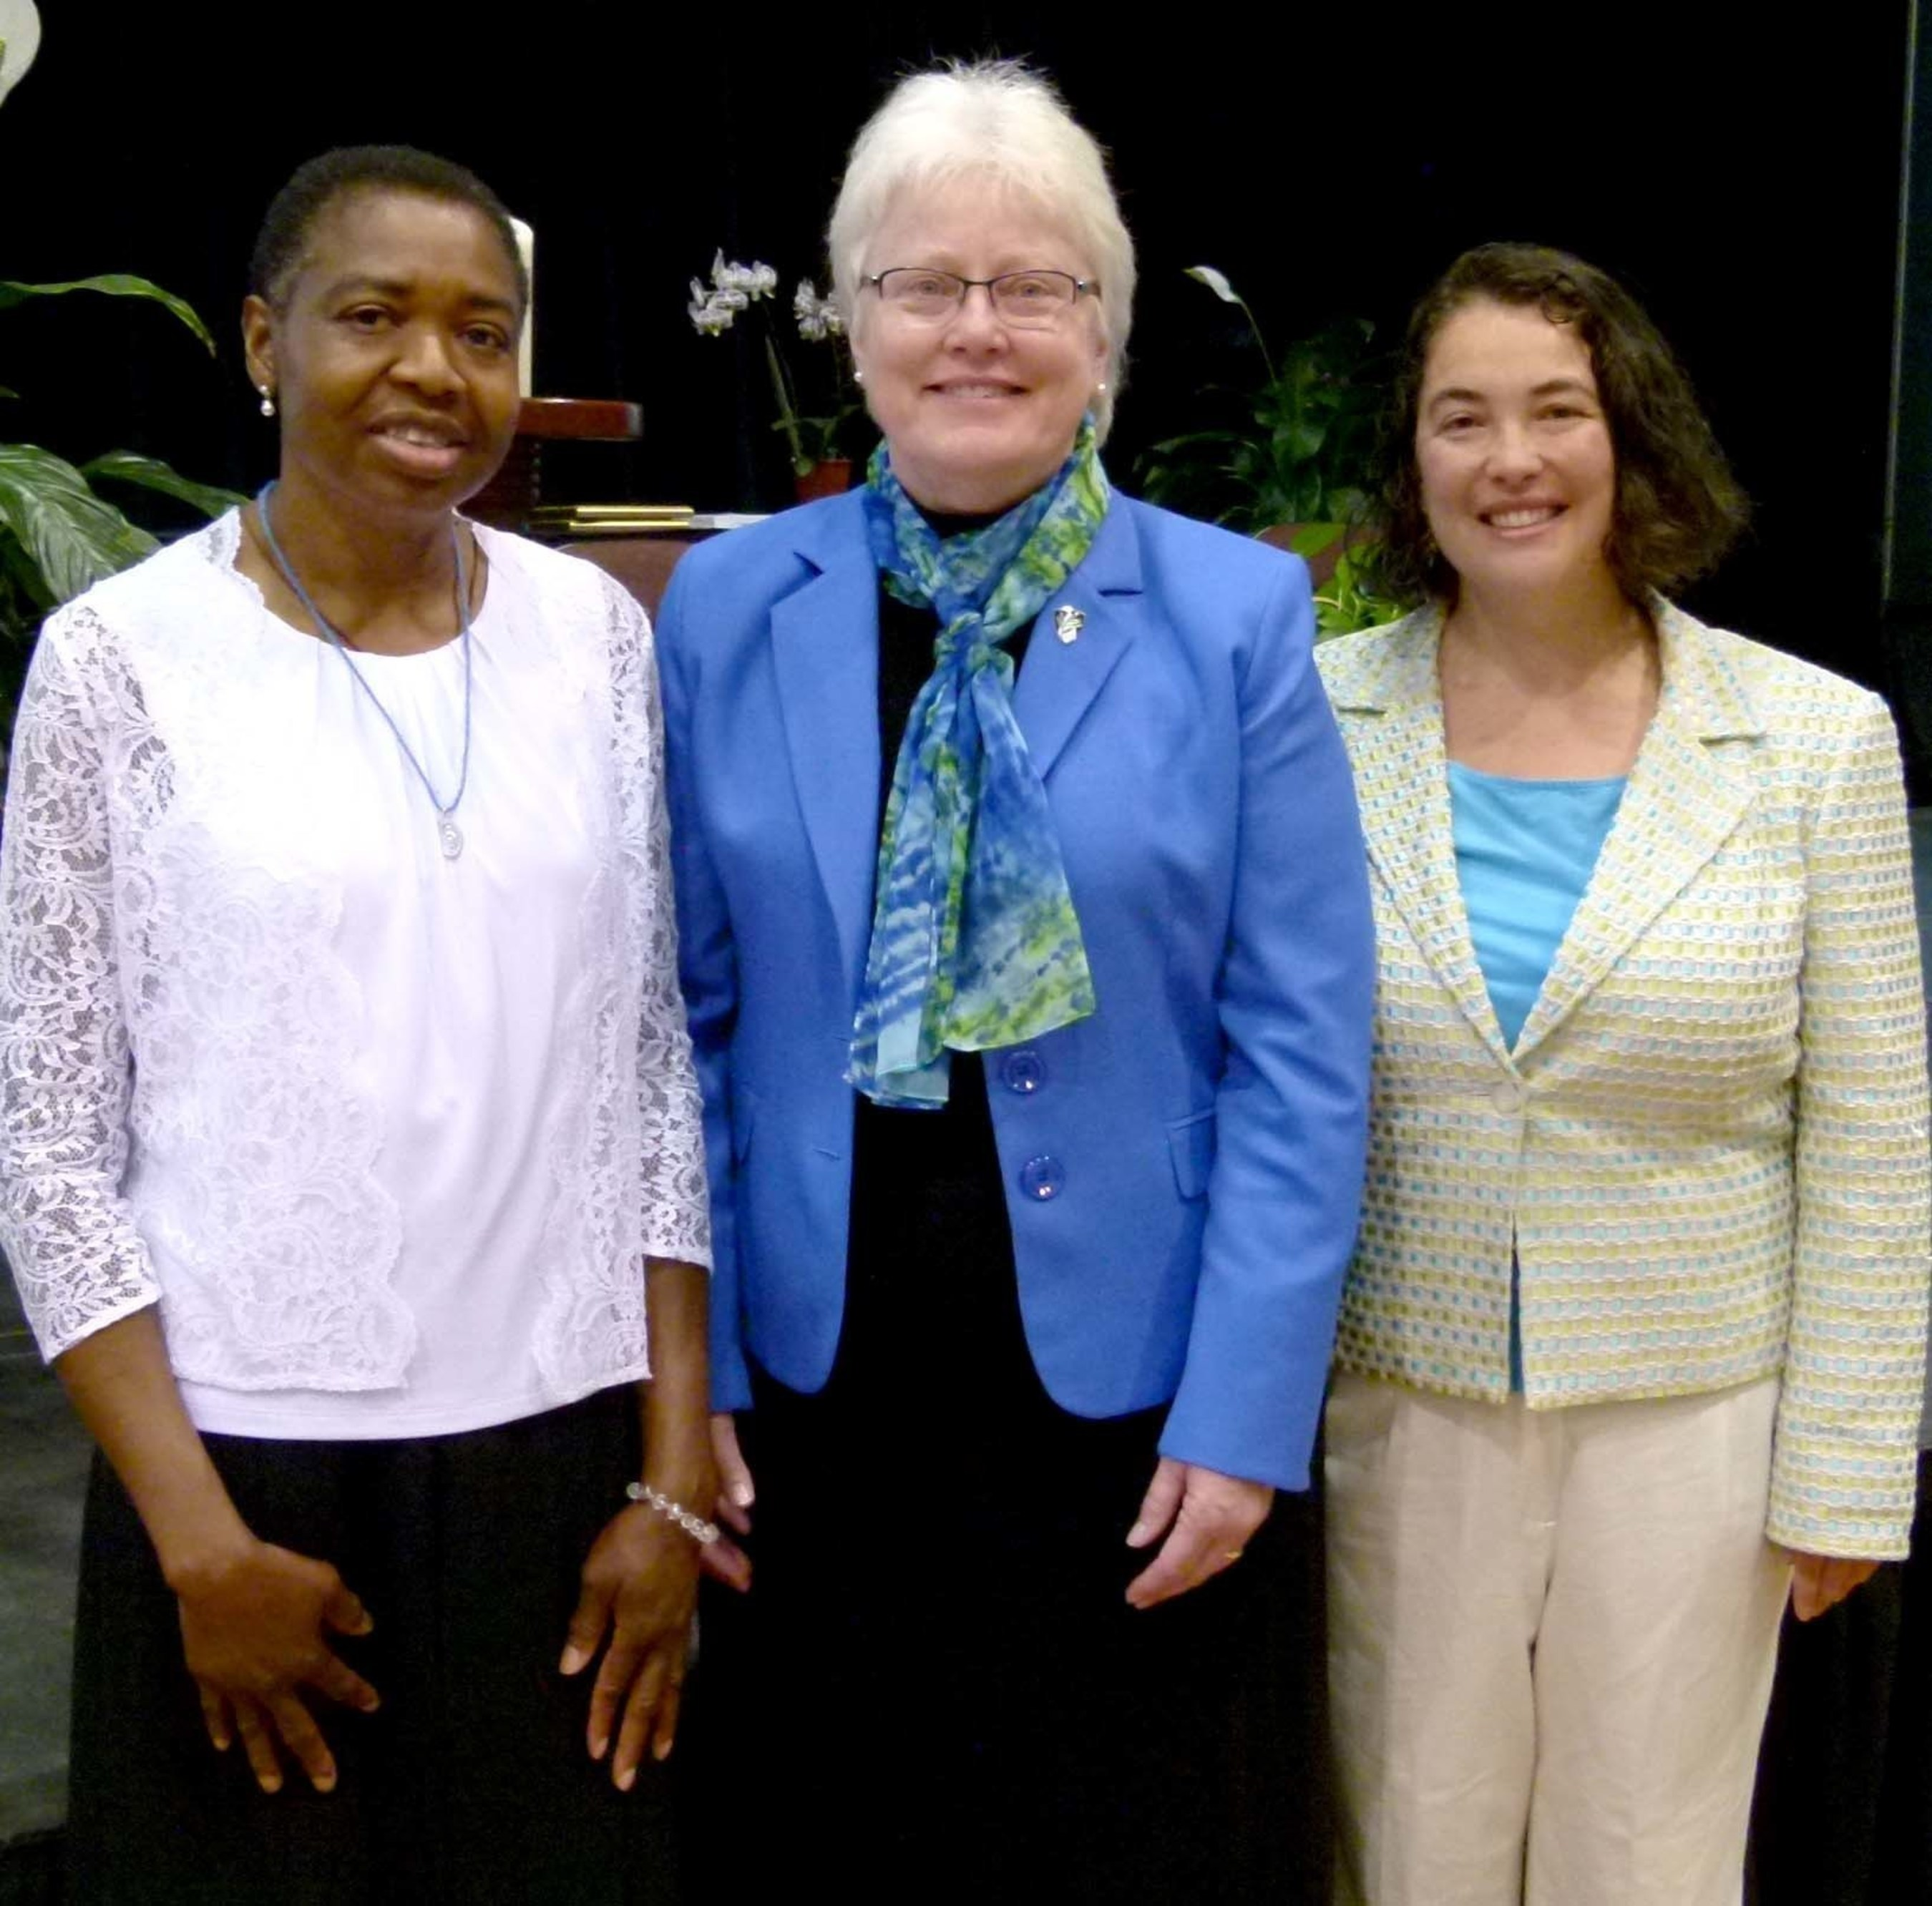 The newest members of the Dominican Sisters of Peace, Sisters Margaret Uche (far left) and Ana Gonzalez (far right) with Sister Patricia Twohill, Prioress.